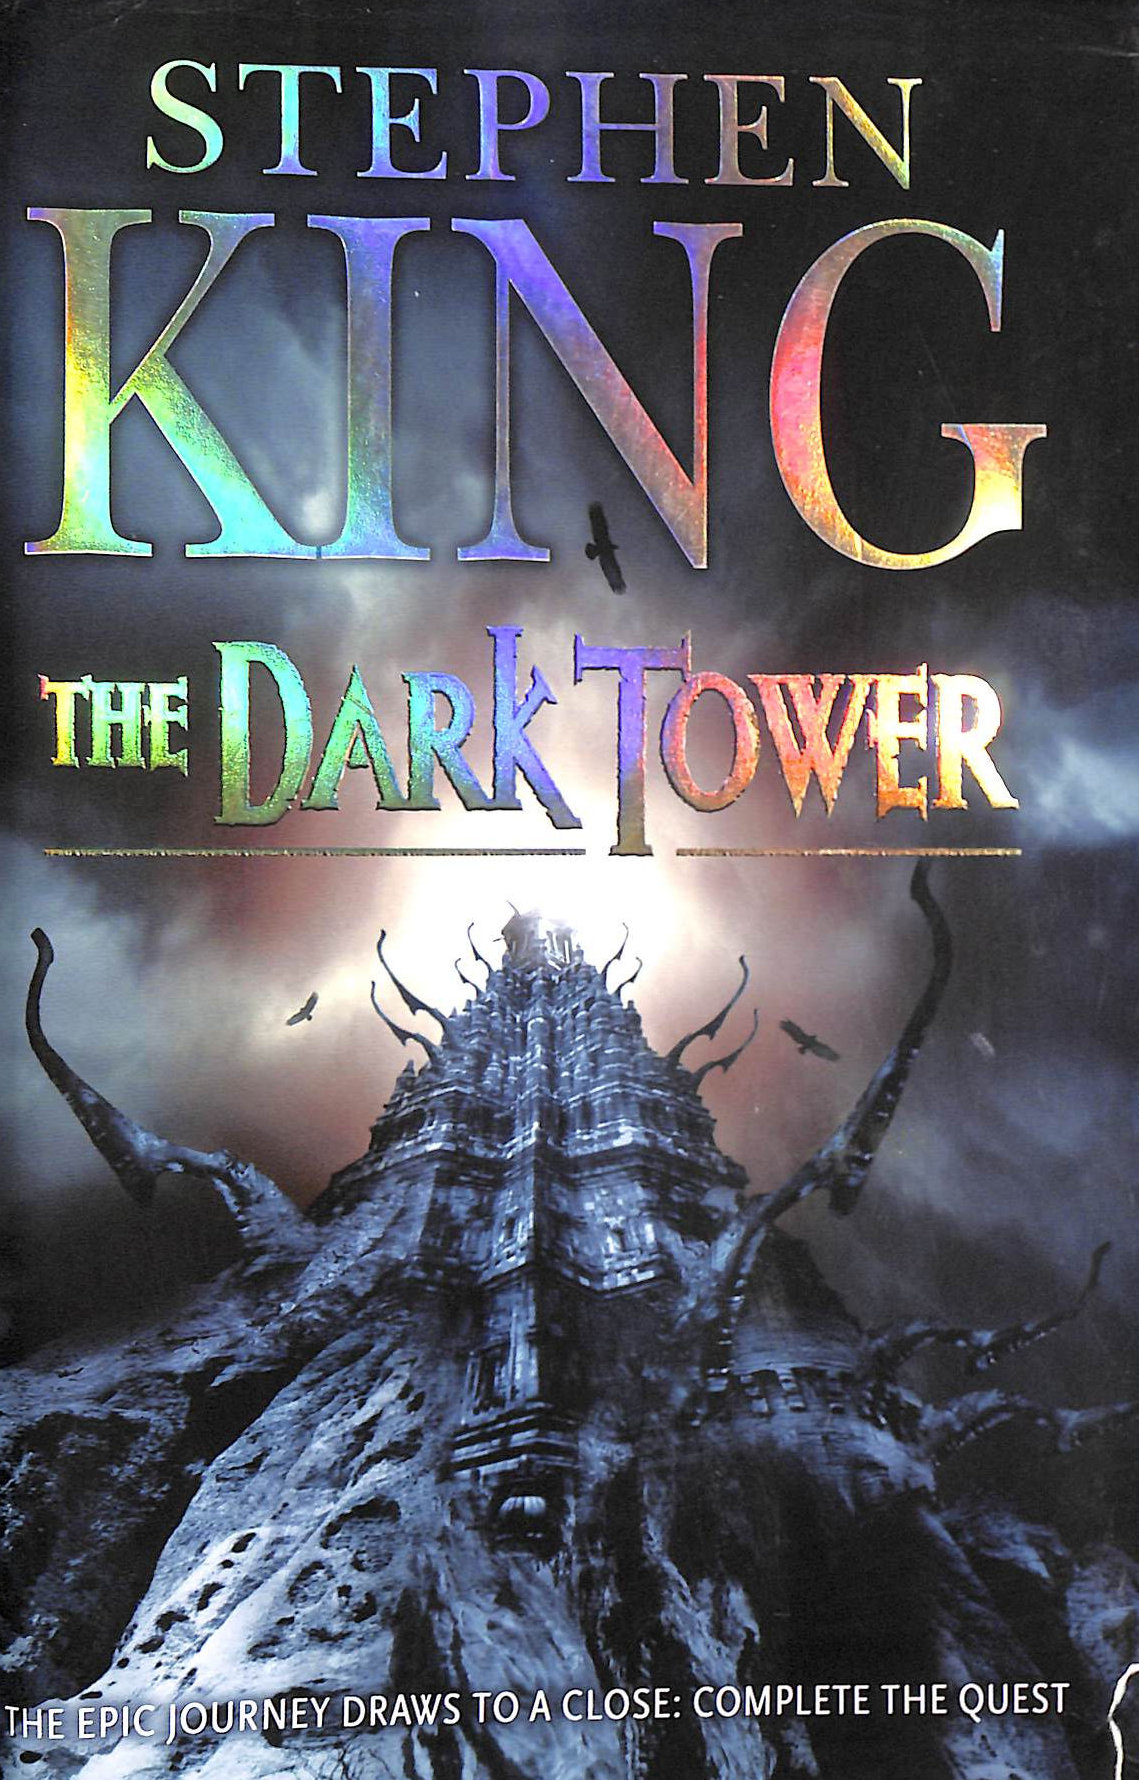 Image for The Dark Tower VII: The Dark Tower